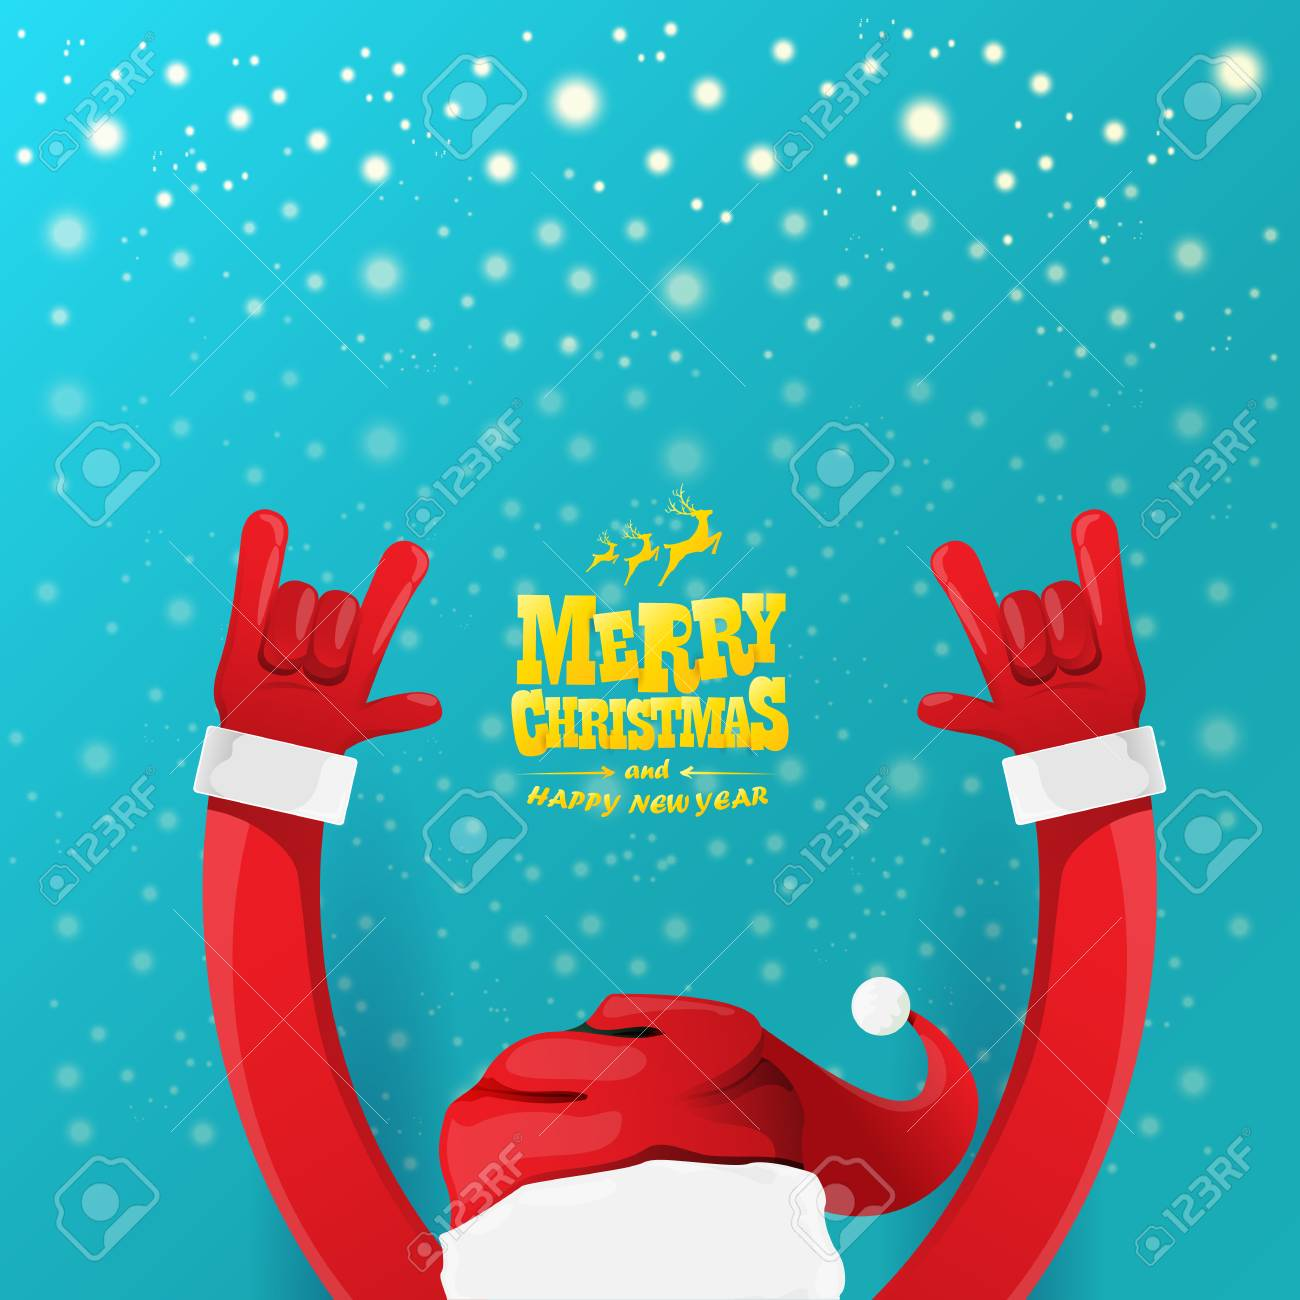 Christmas Rock.Vector Cartoon Rock N Roll Santa Claus Character With Gold Calligraphic